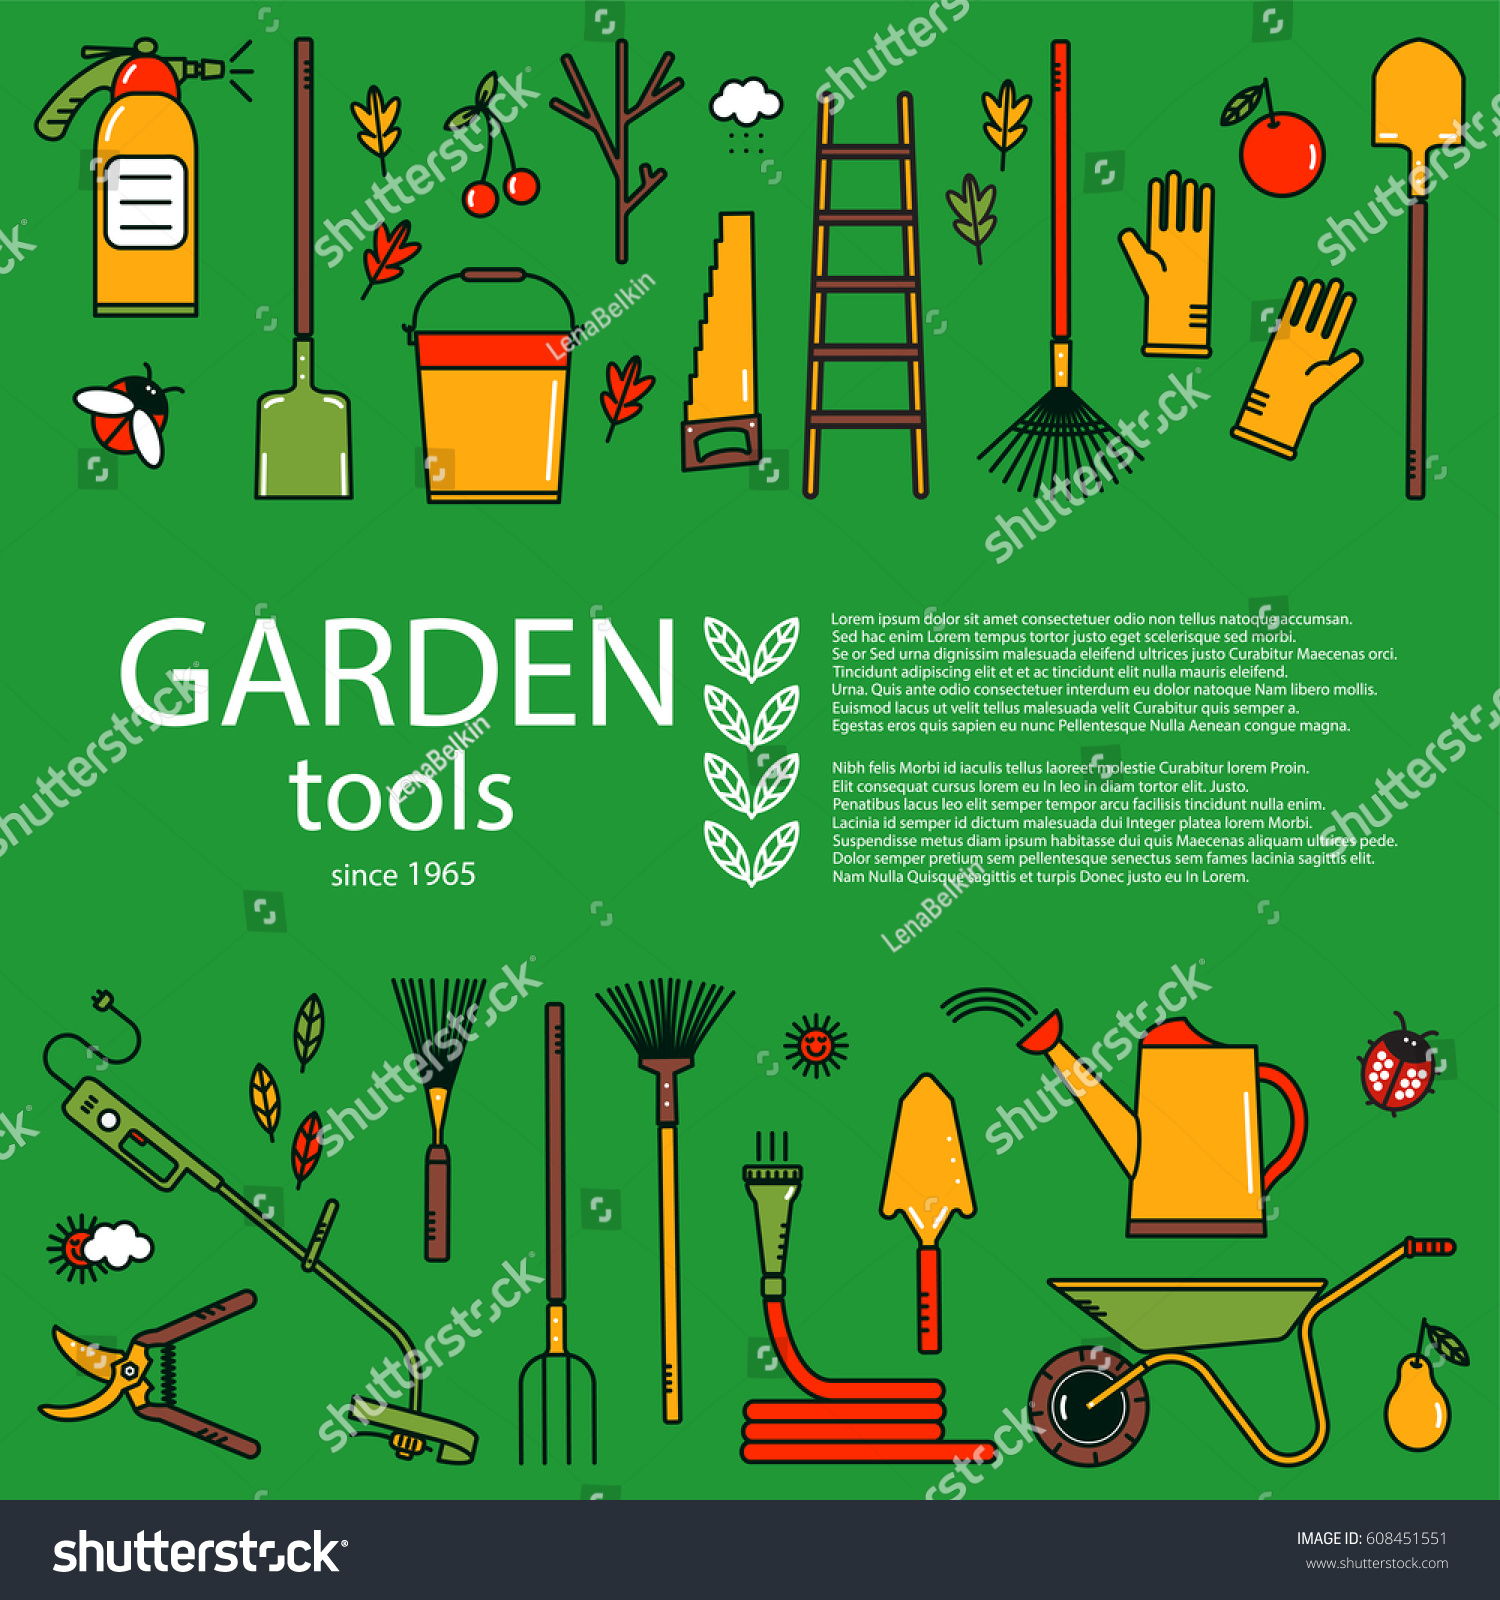 Garden Equipment Concept In Bright Colors. Design Element For